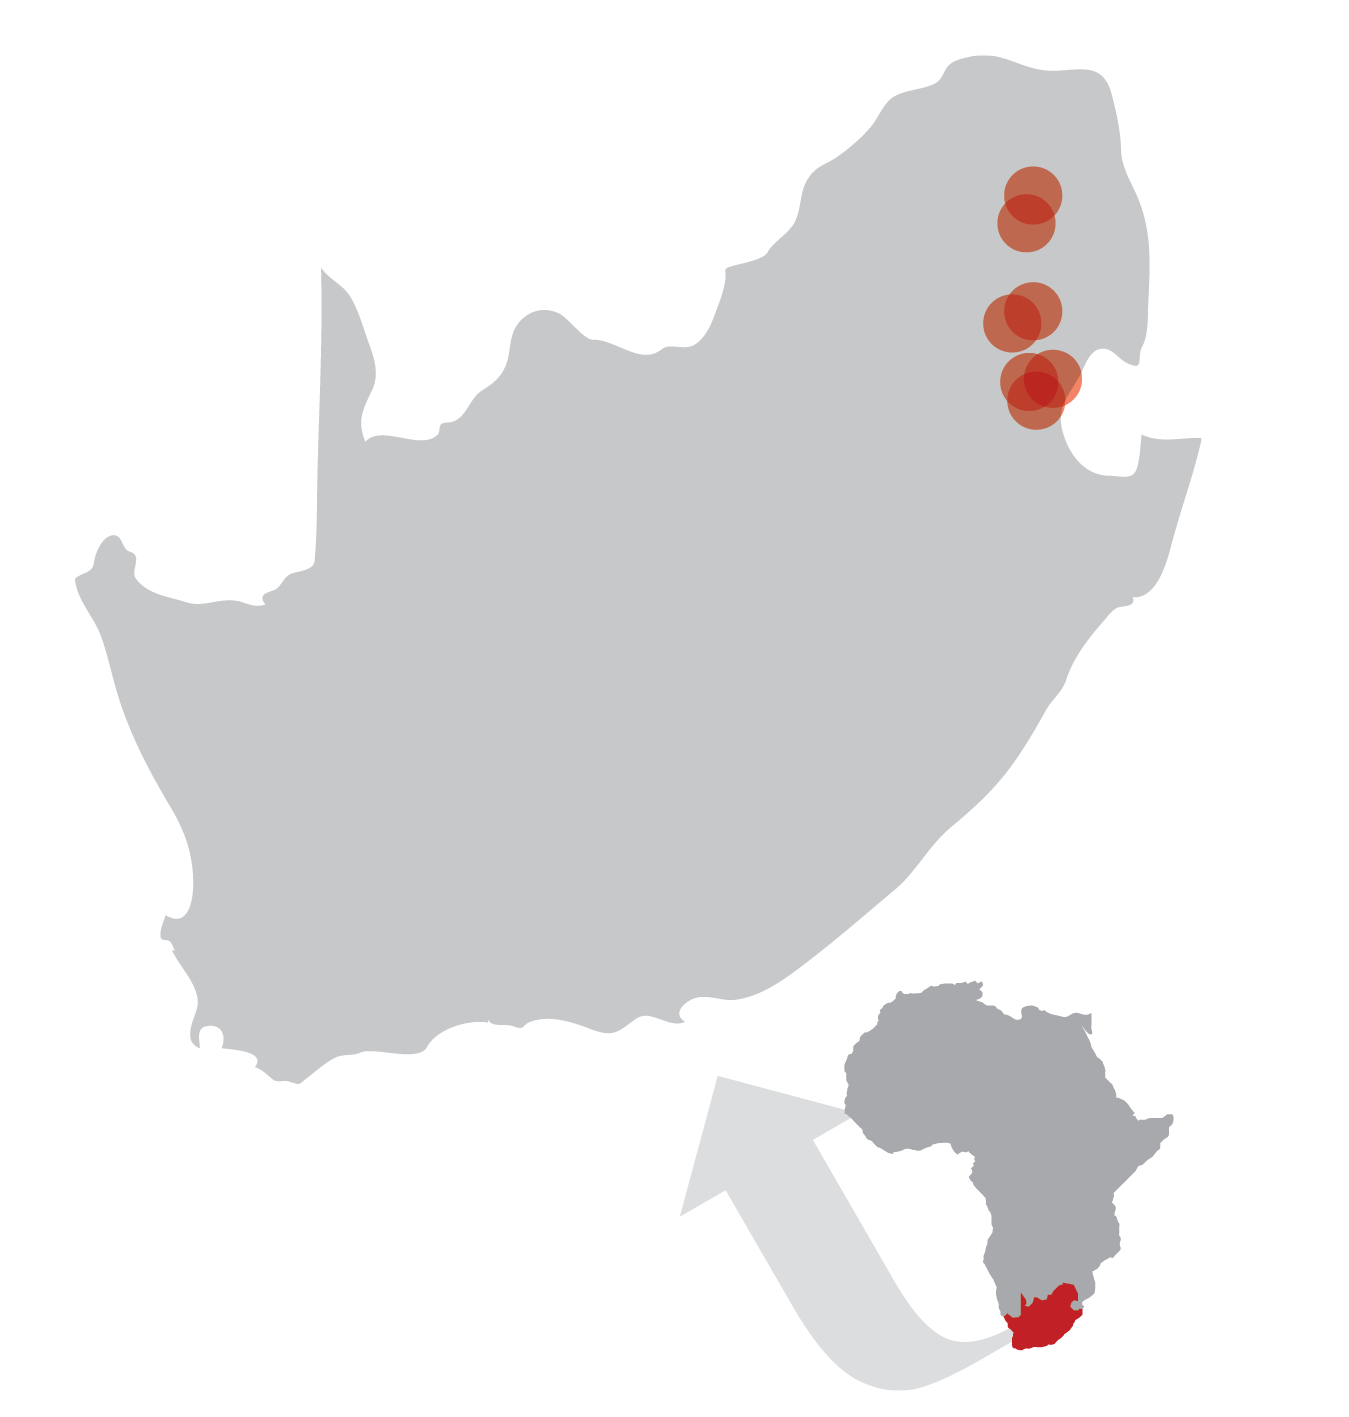 Areas in South Africa being impacted by Hands at Work